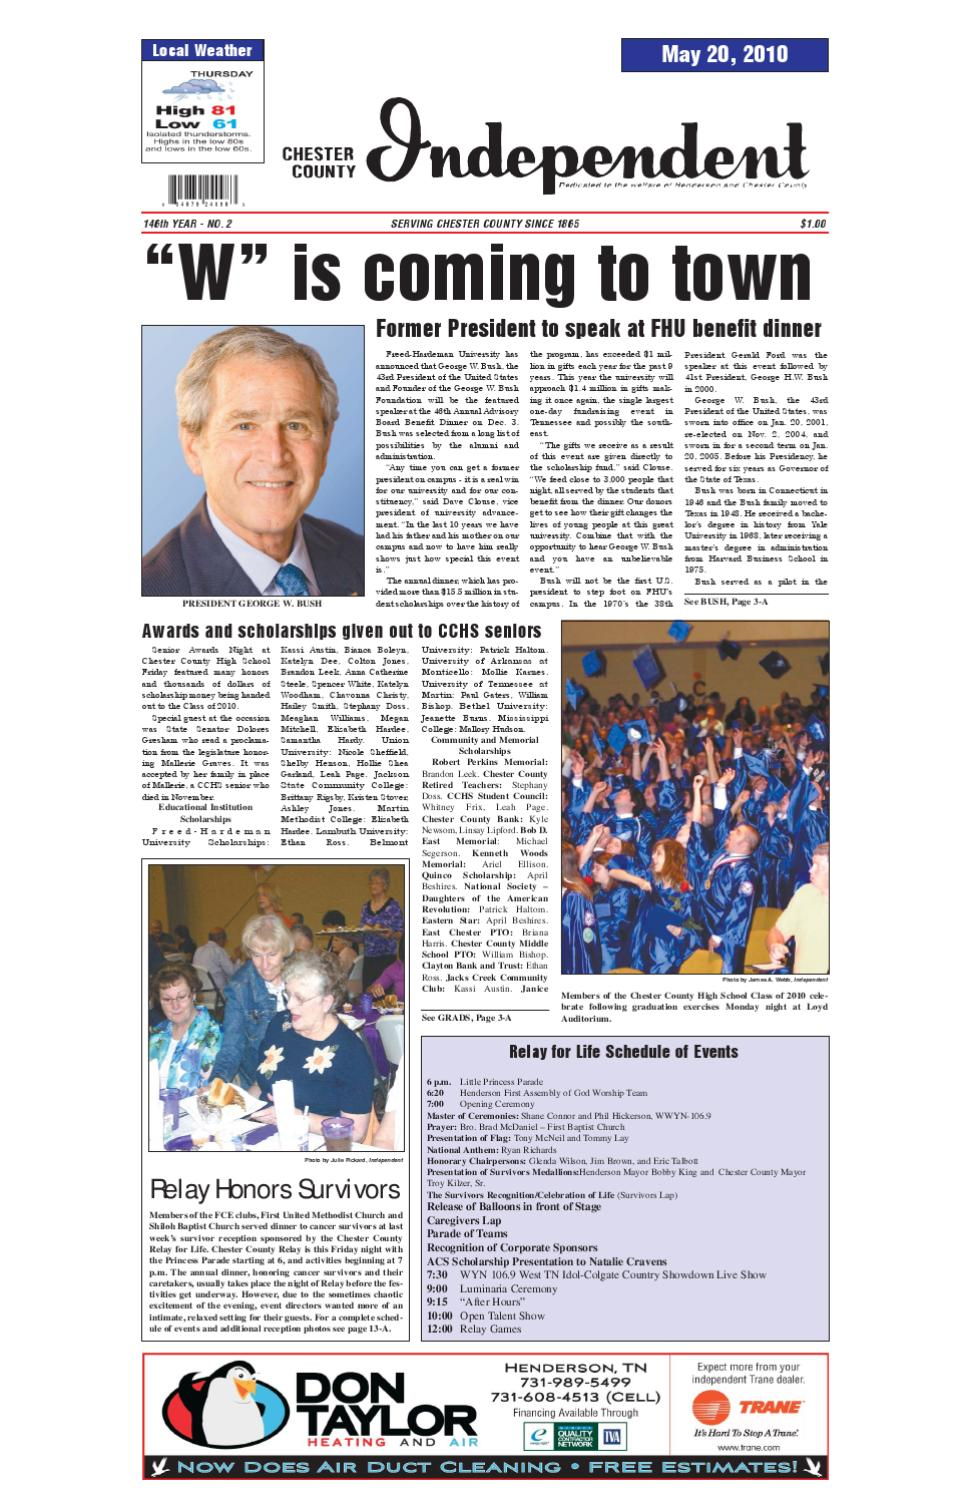 Tennessee chester county enville - Chester County Independent 05 20 10 By Chester County Independent Issuu